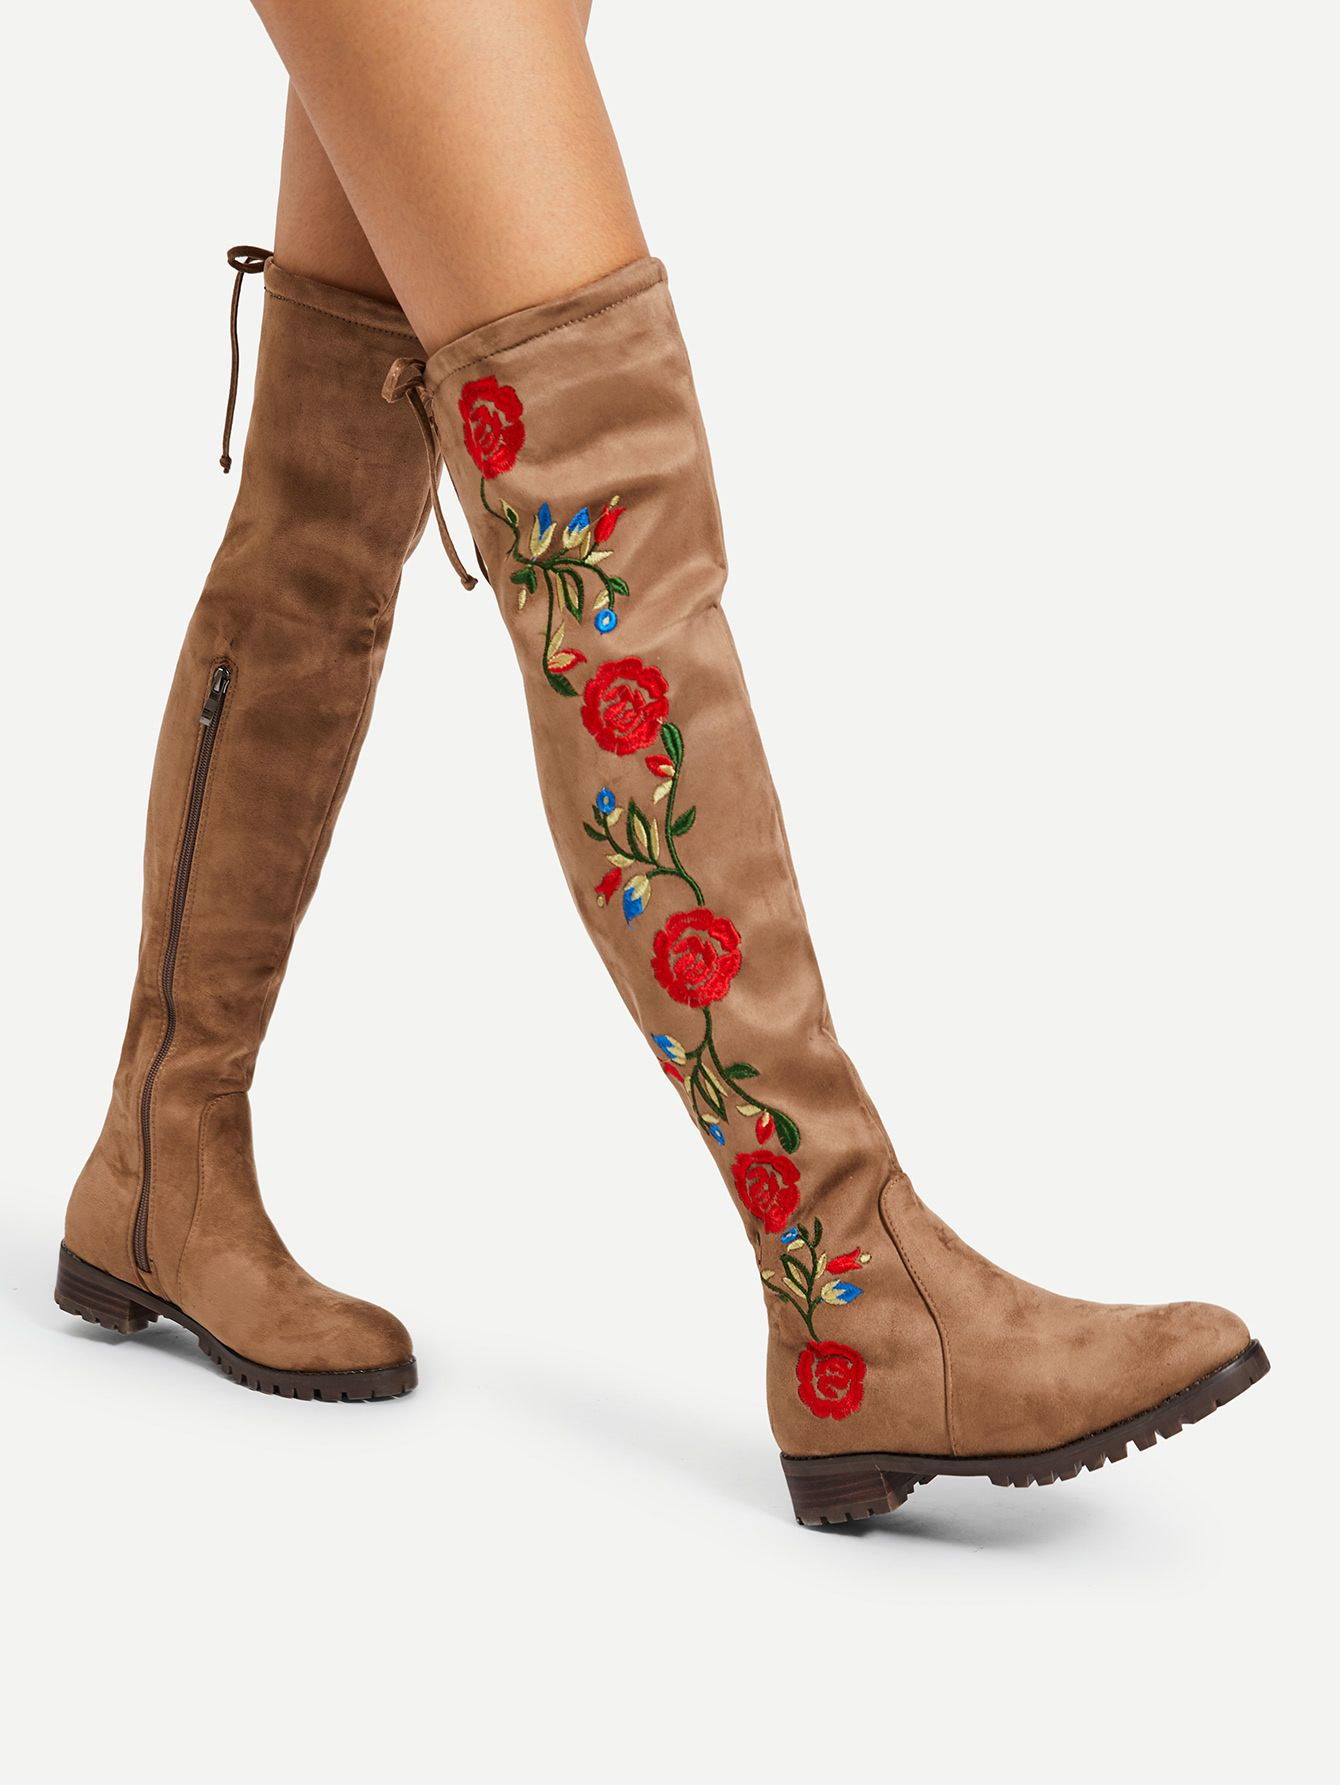 0e3ea34c6c885 Shop Flower Embroidery Over The Knee Boots online. SheIn offers Flower  Embroidery Over The Knee Boots   more to fit your fashionable needs. Botas  por encima ...